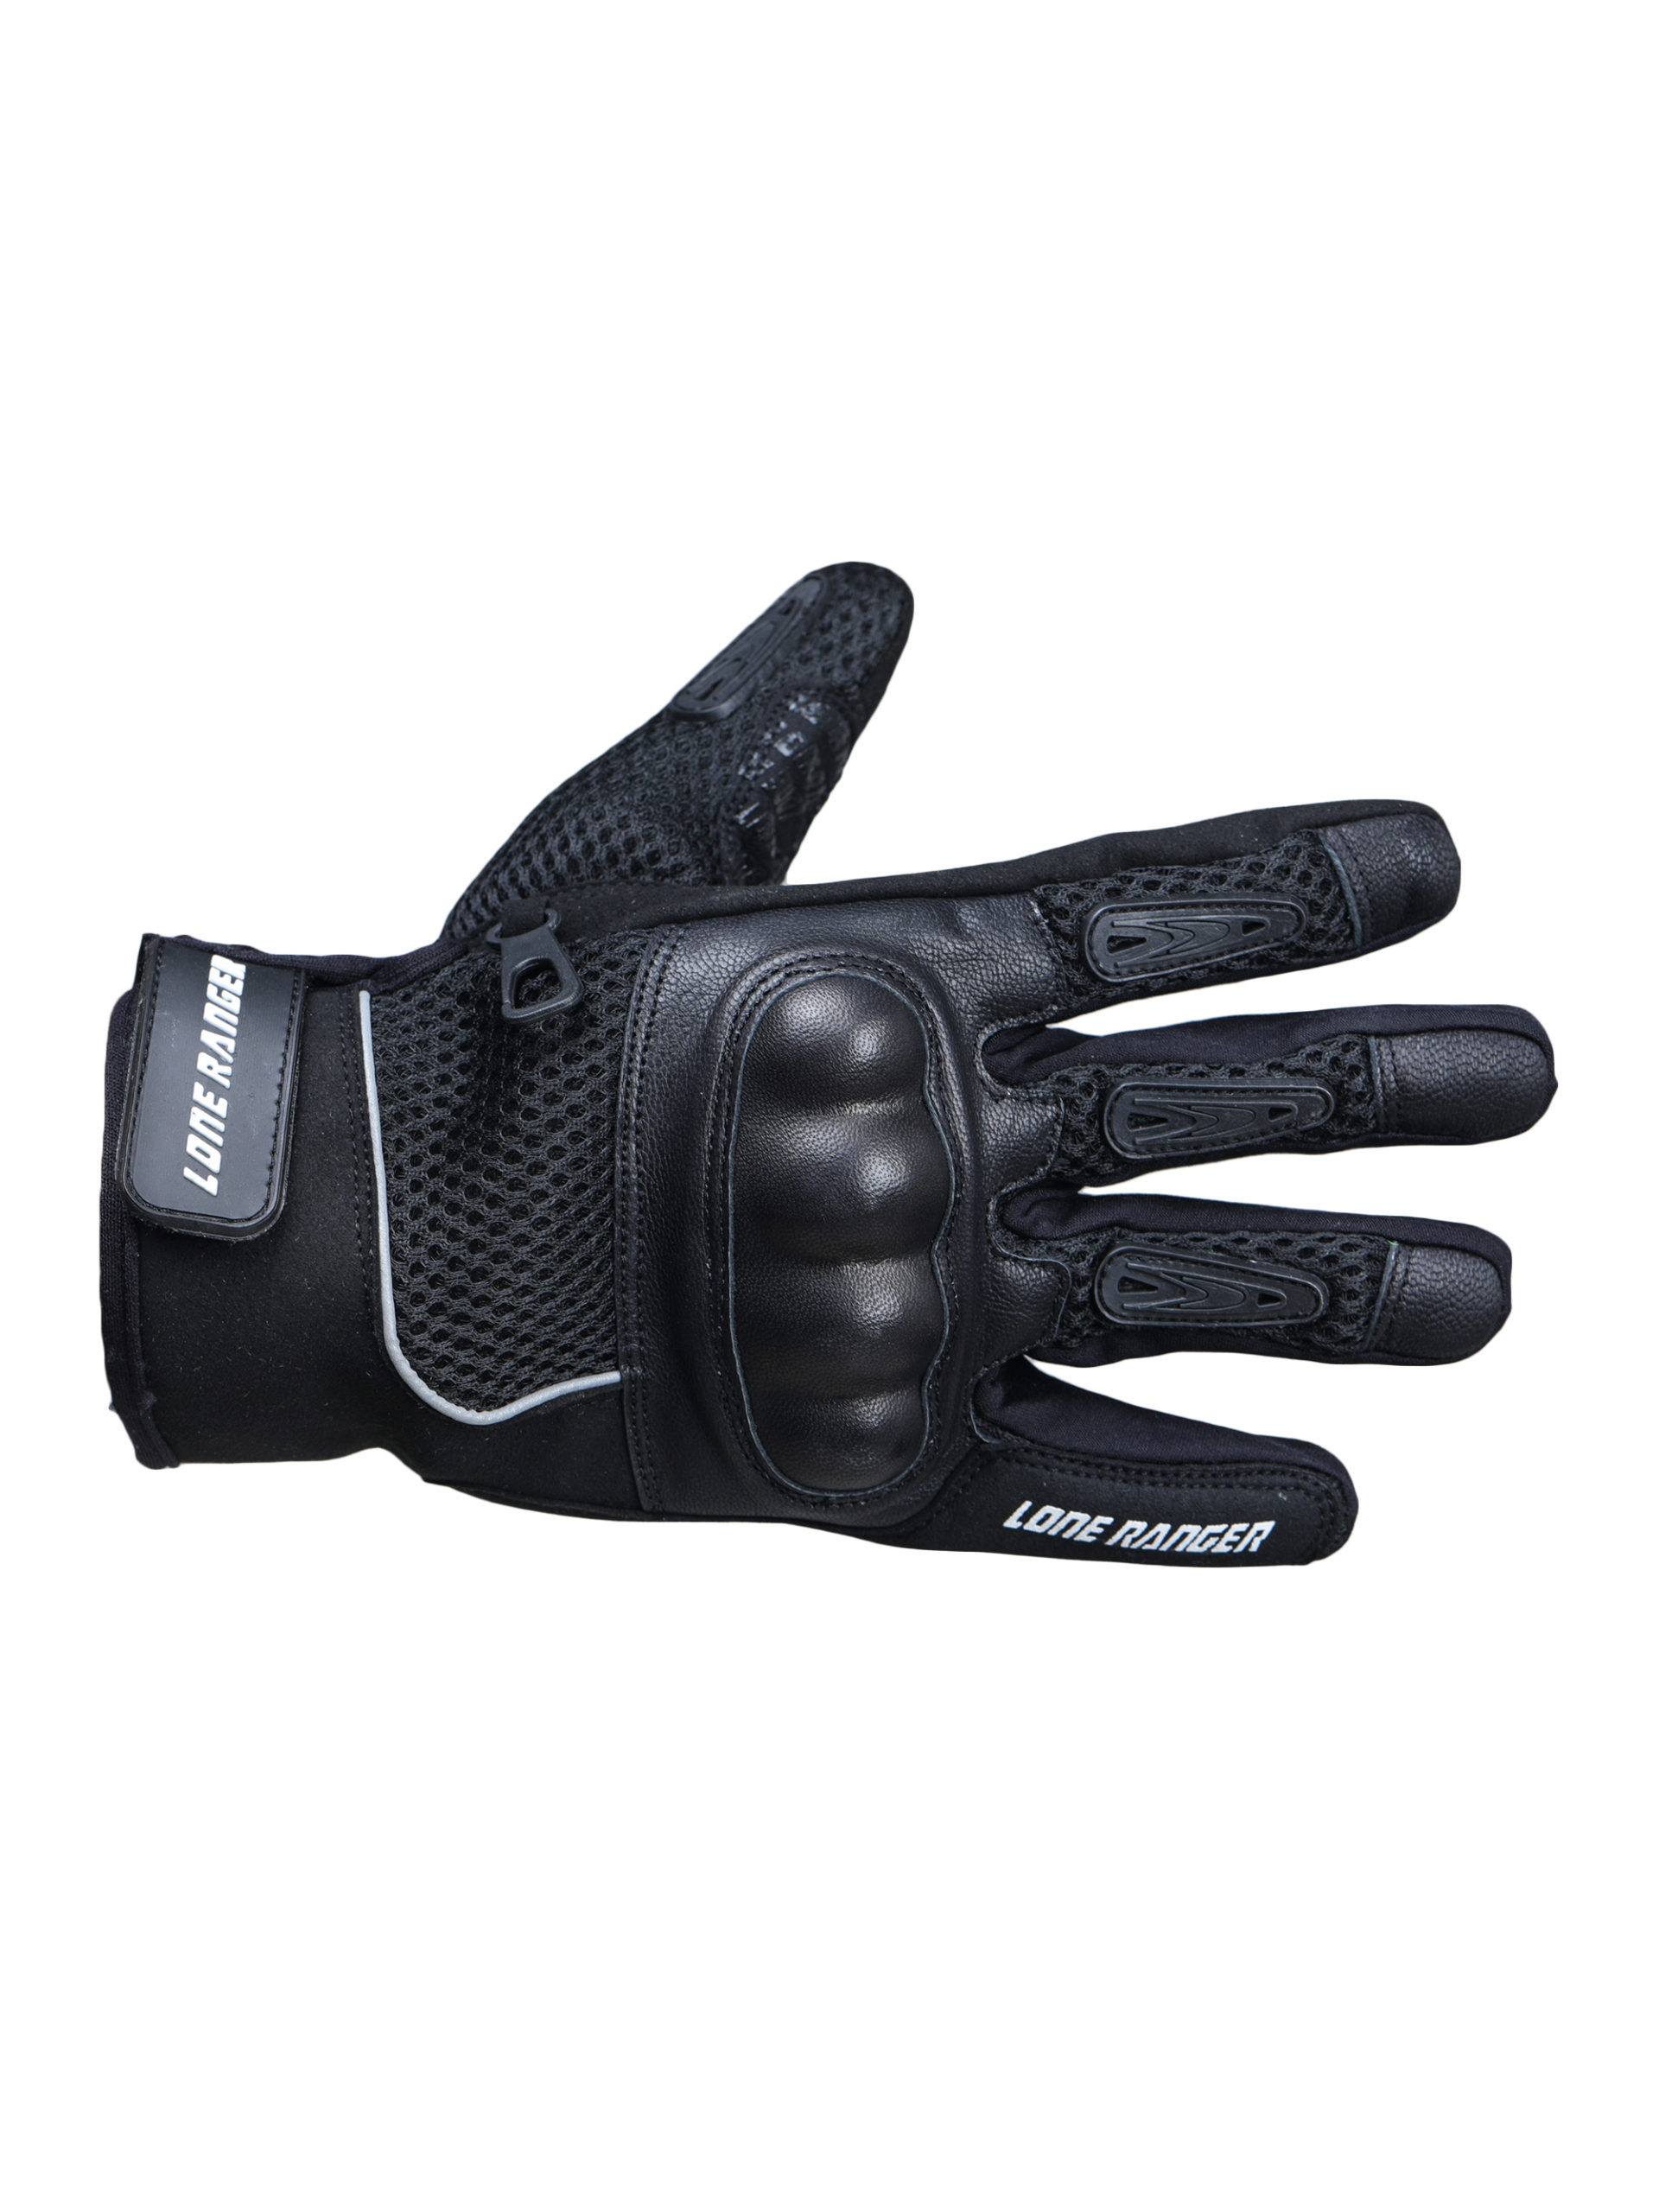 royalb0a6d8_air-x-gloves-black4